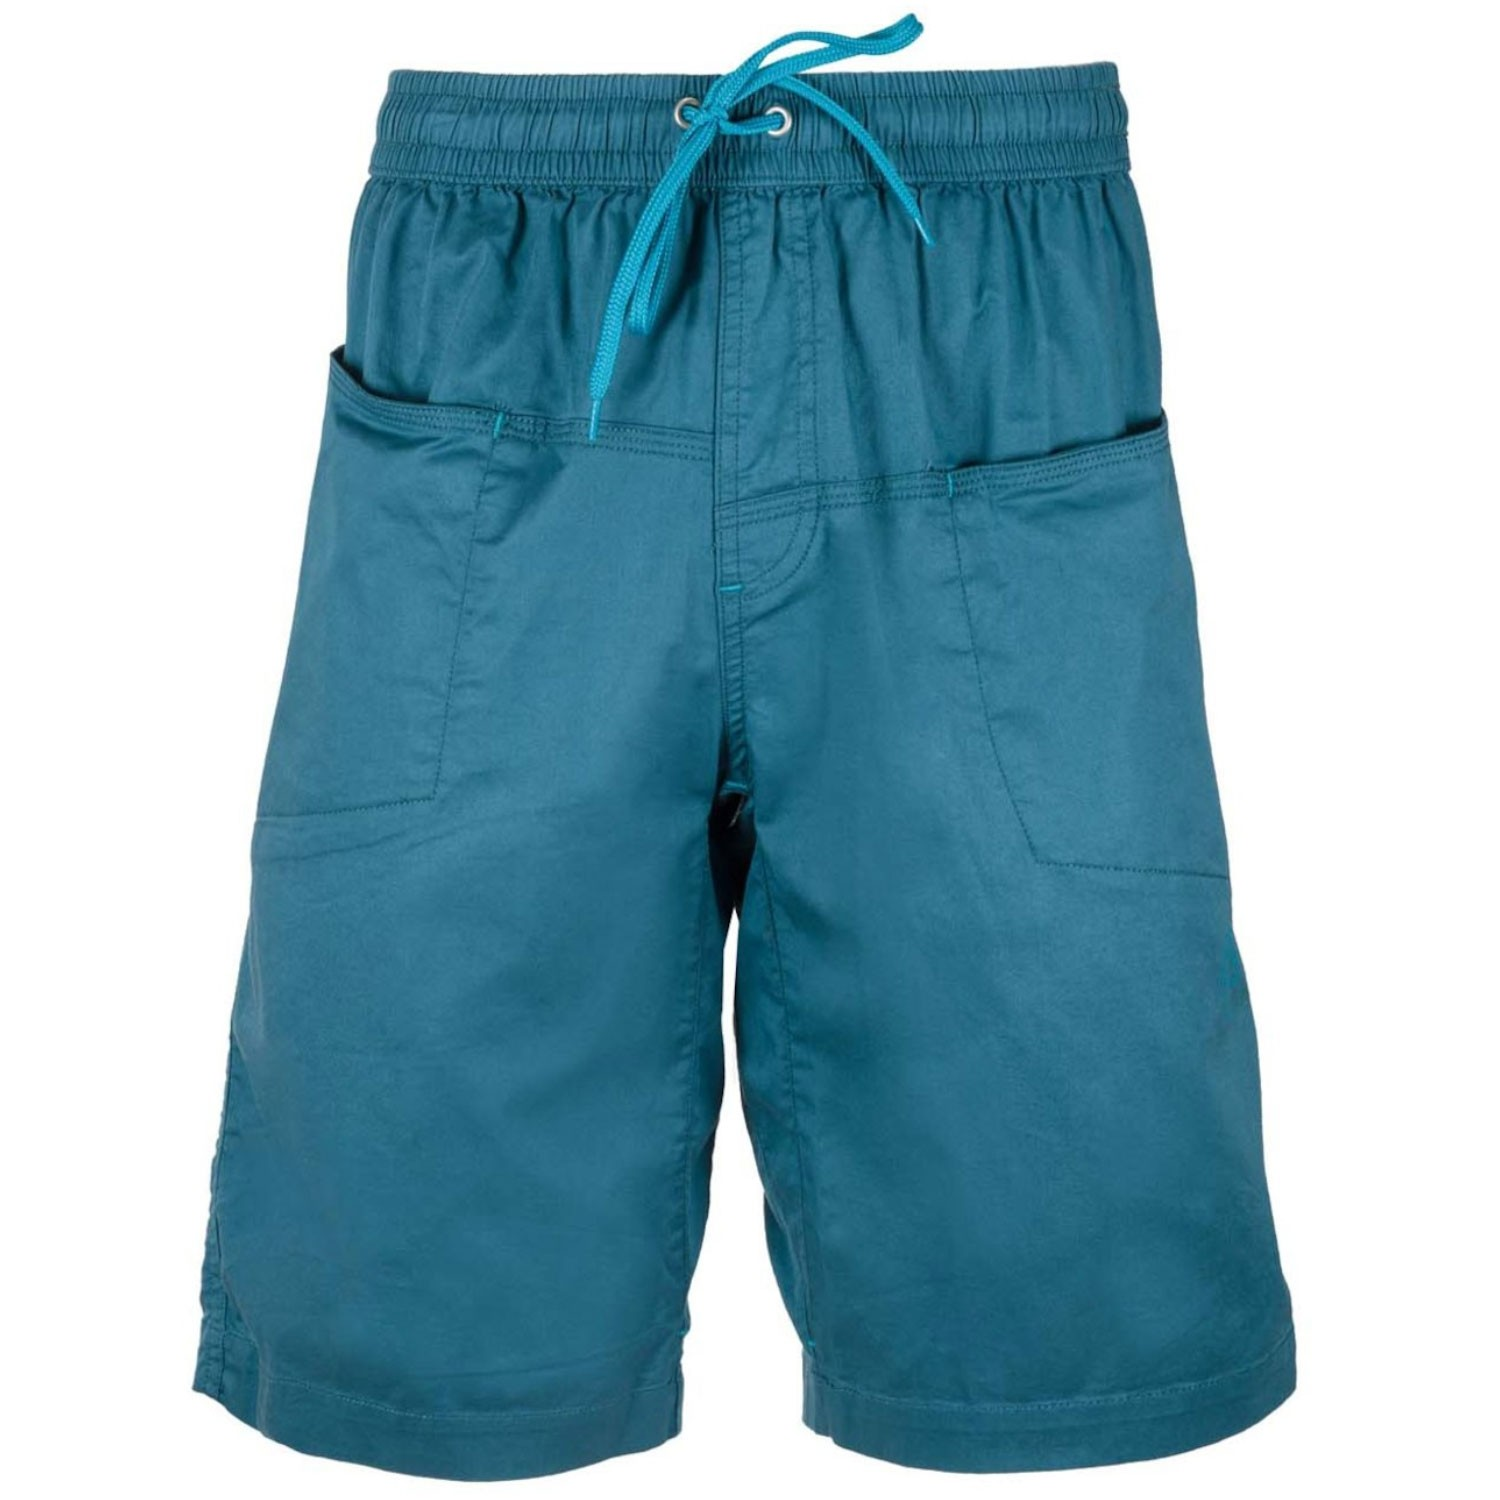 La Sportiva Levanto Men's Shorts - Lake - front